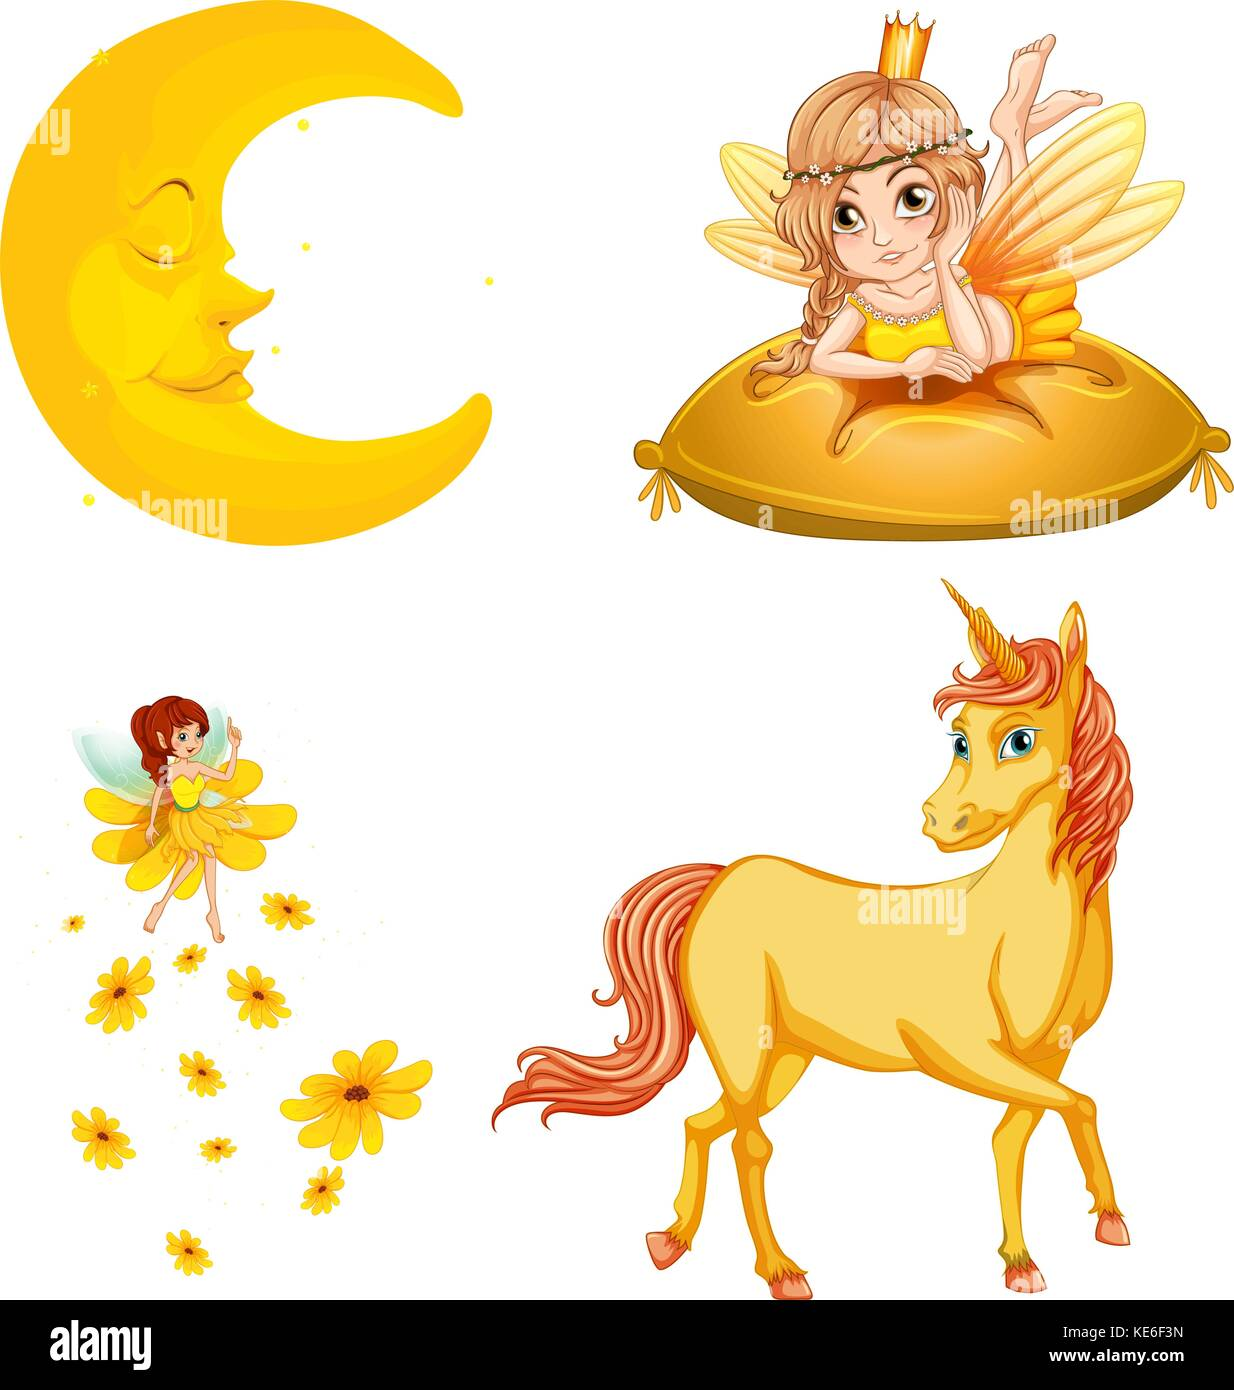 Fairy tales characters and moon illustration - Stock Image